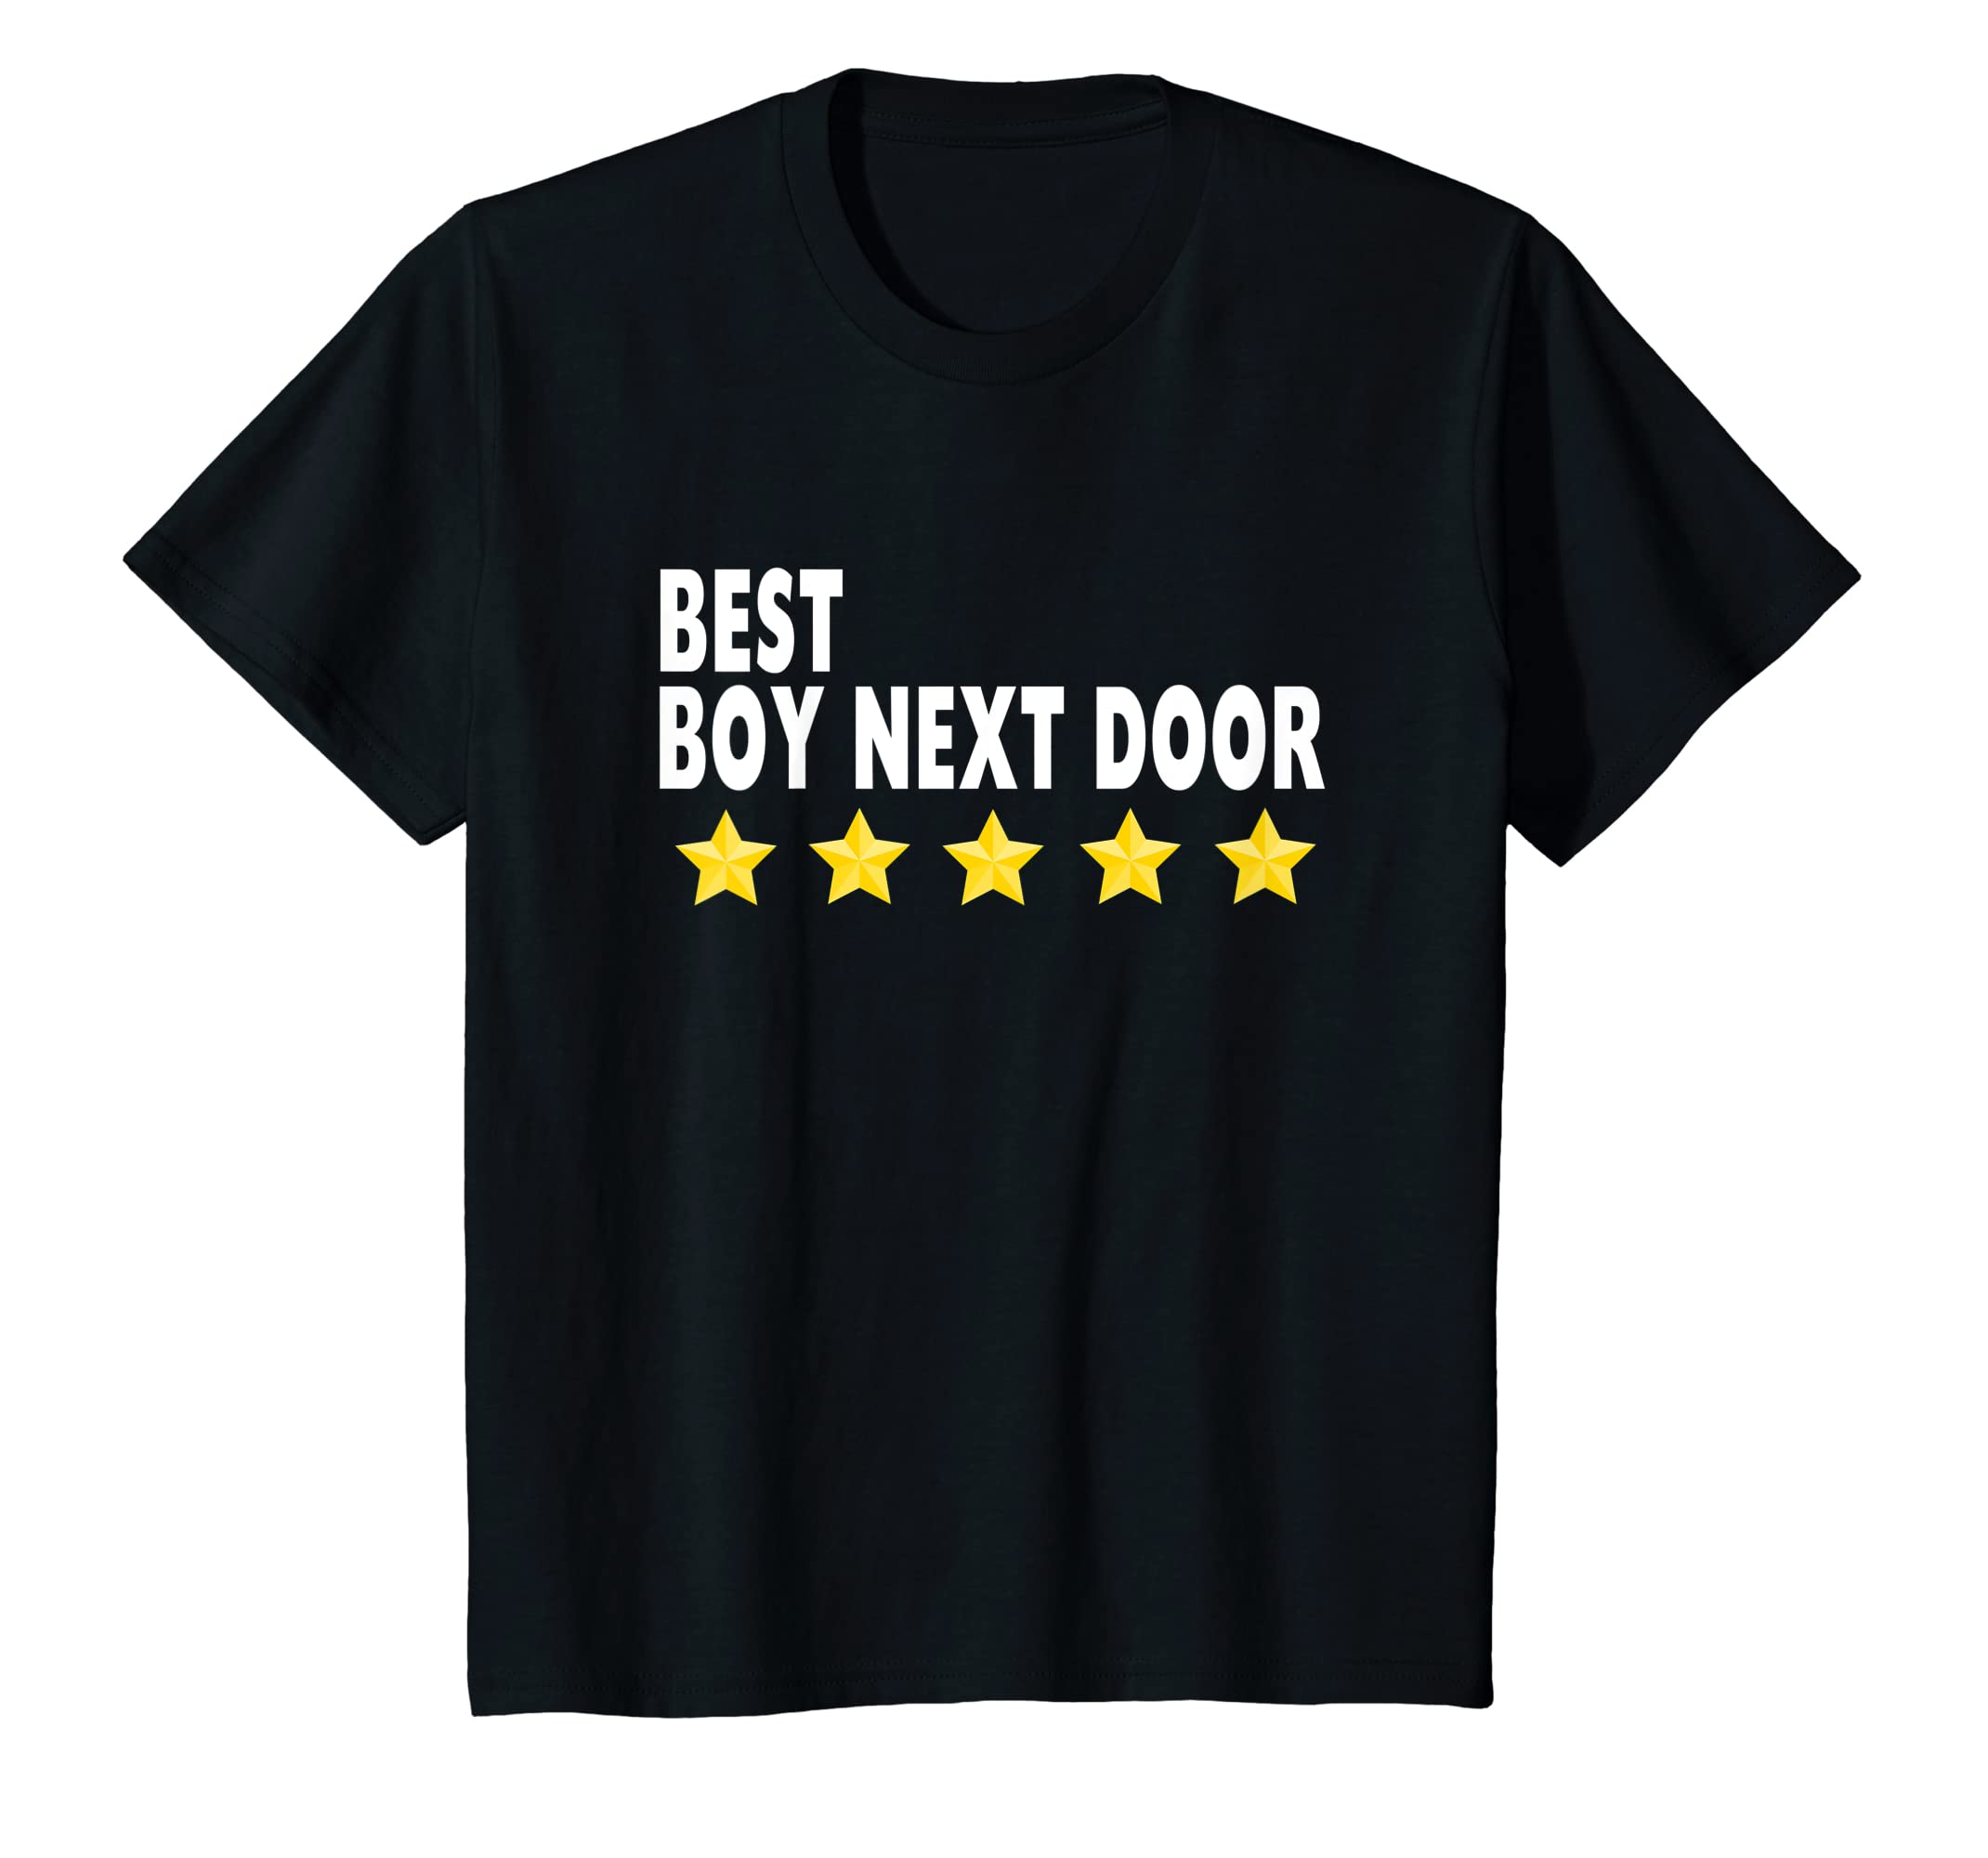 9729134f276 Amazon.com  Best Boy Next Door T-Shirt Best 5 Star Men Gifts Tee Shirts   Clothing